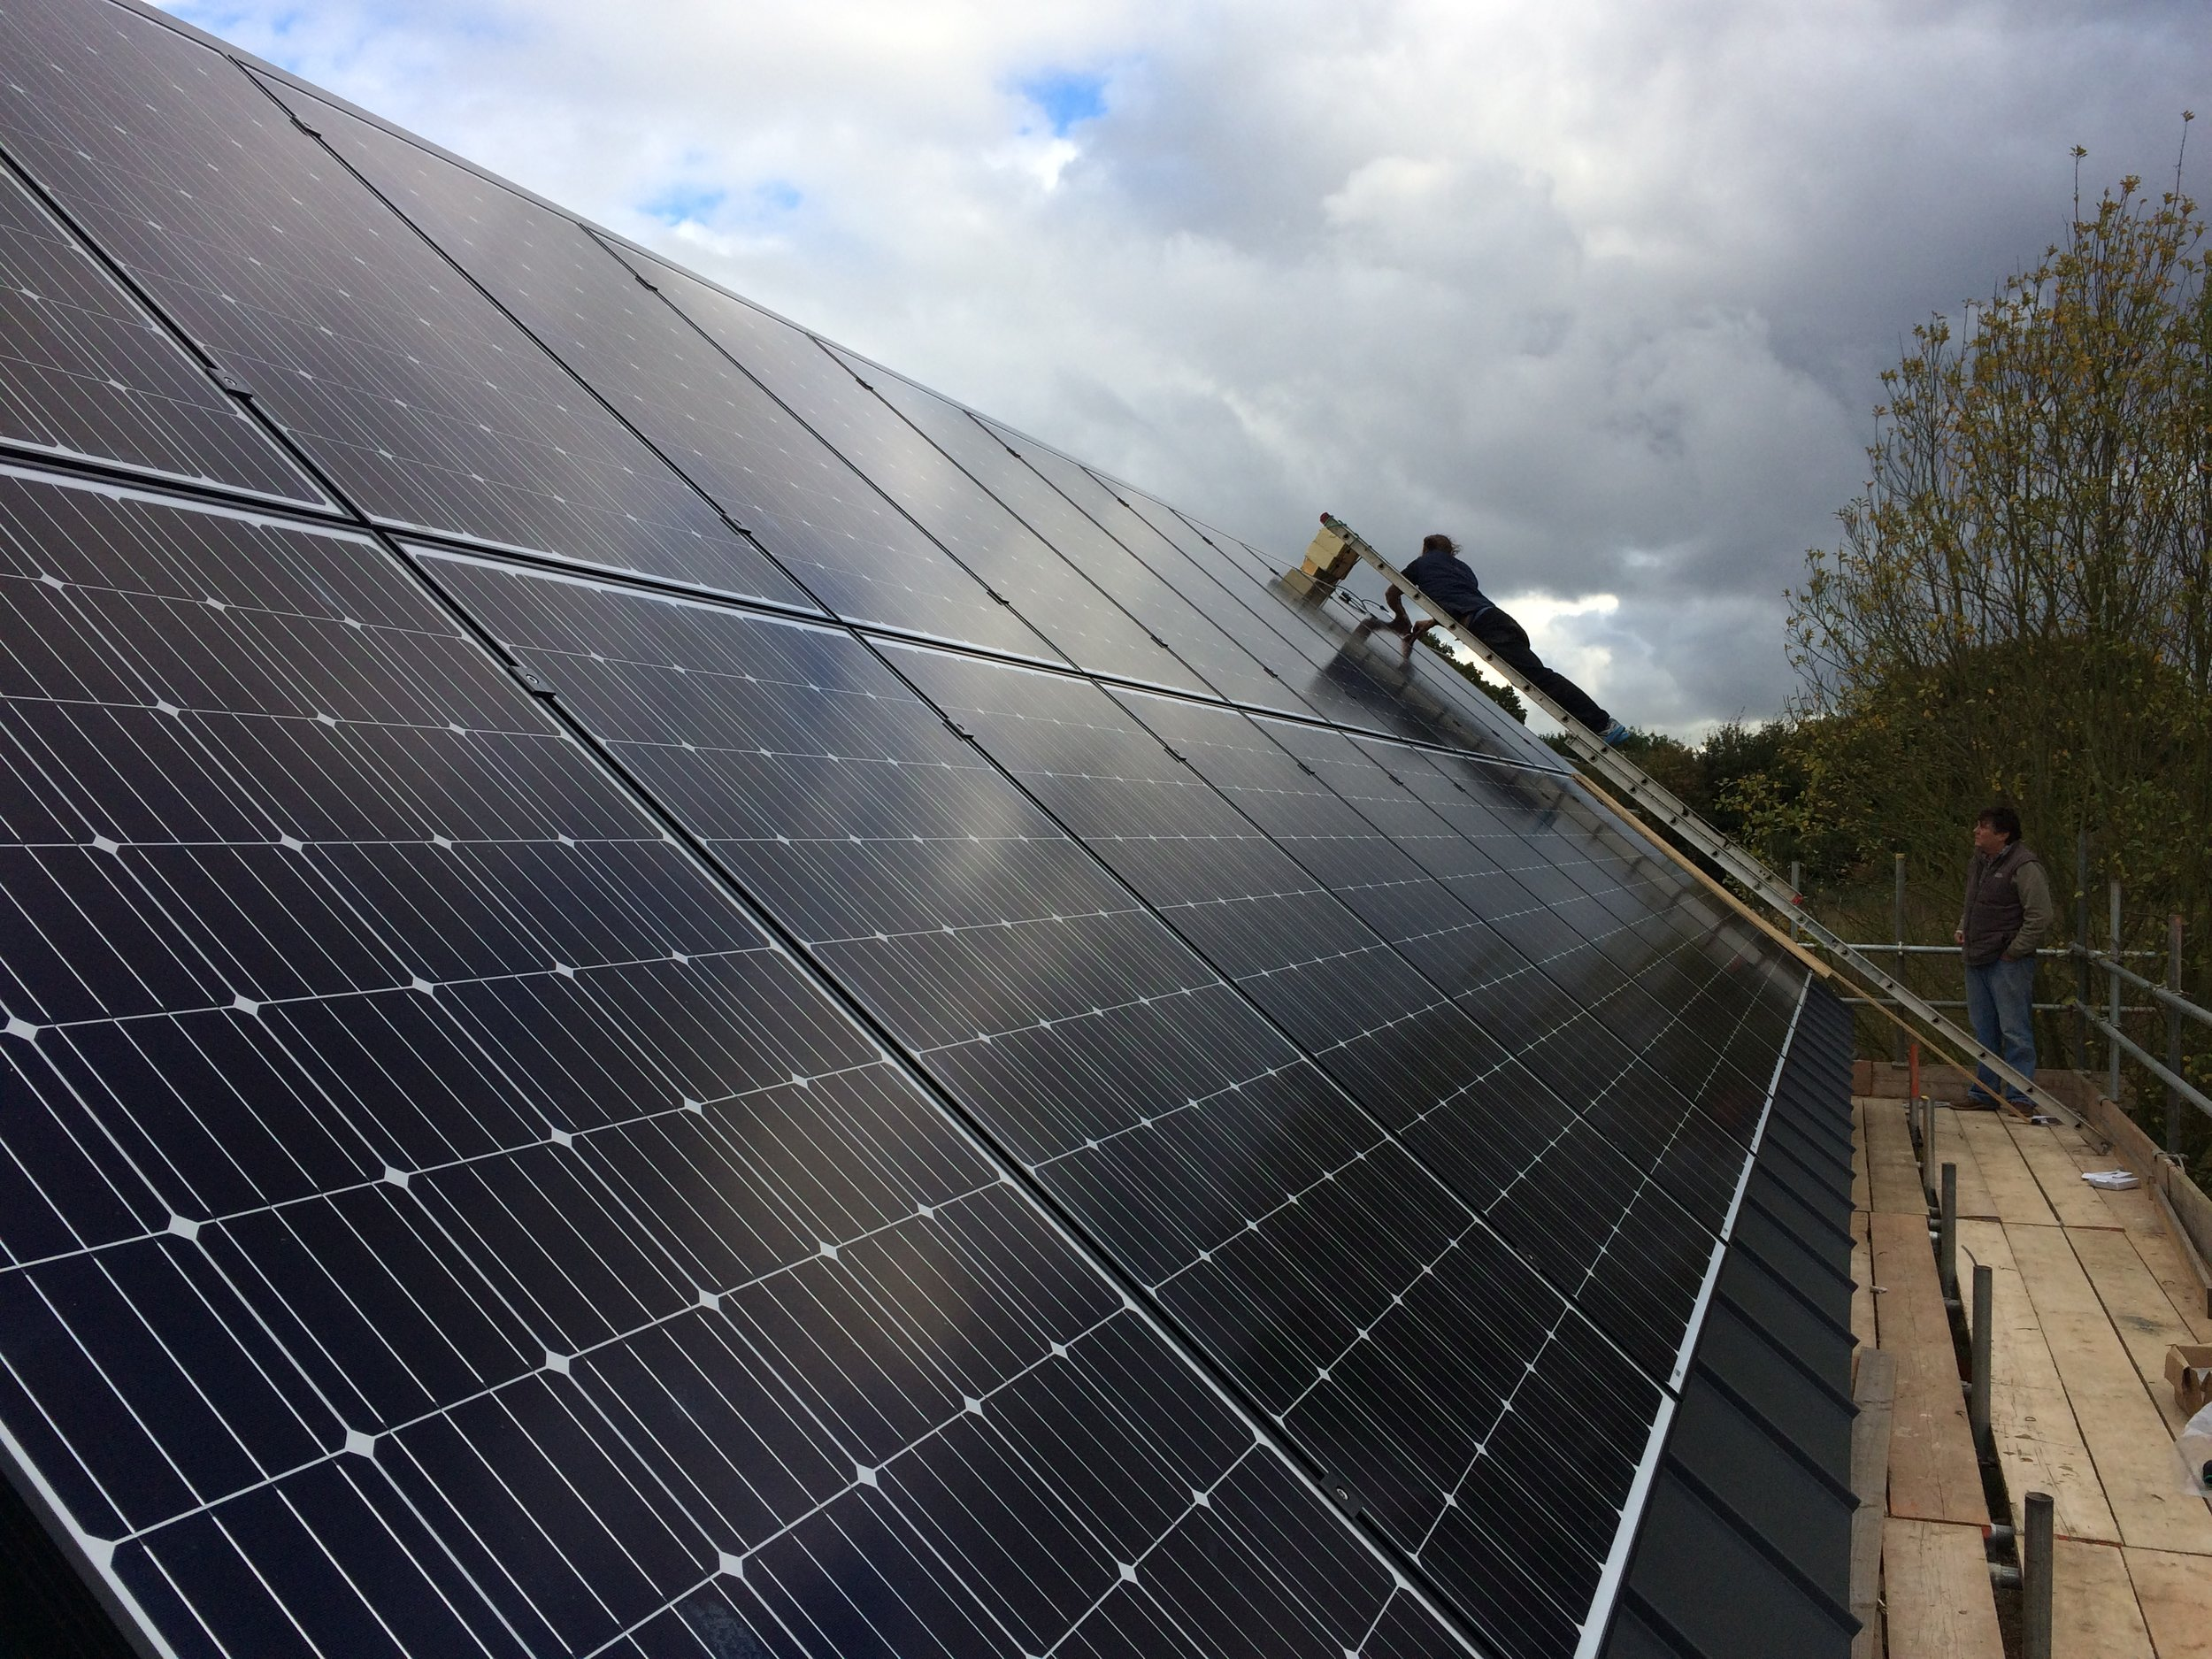 Installation of the PV array on Top Barn